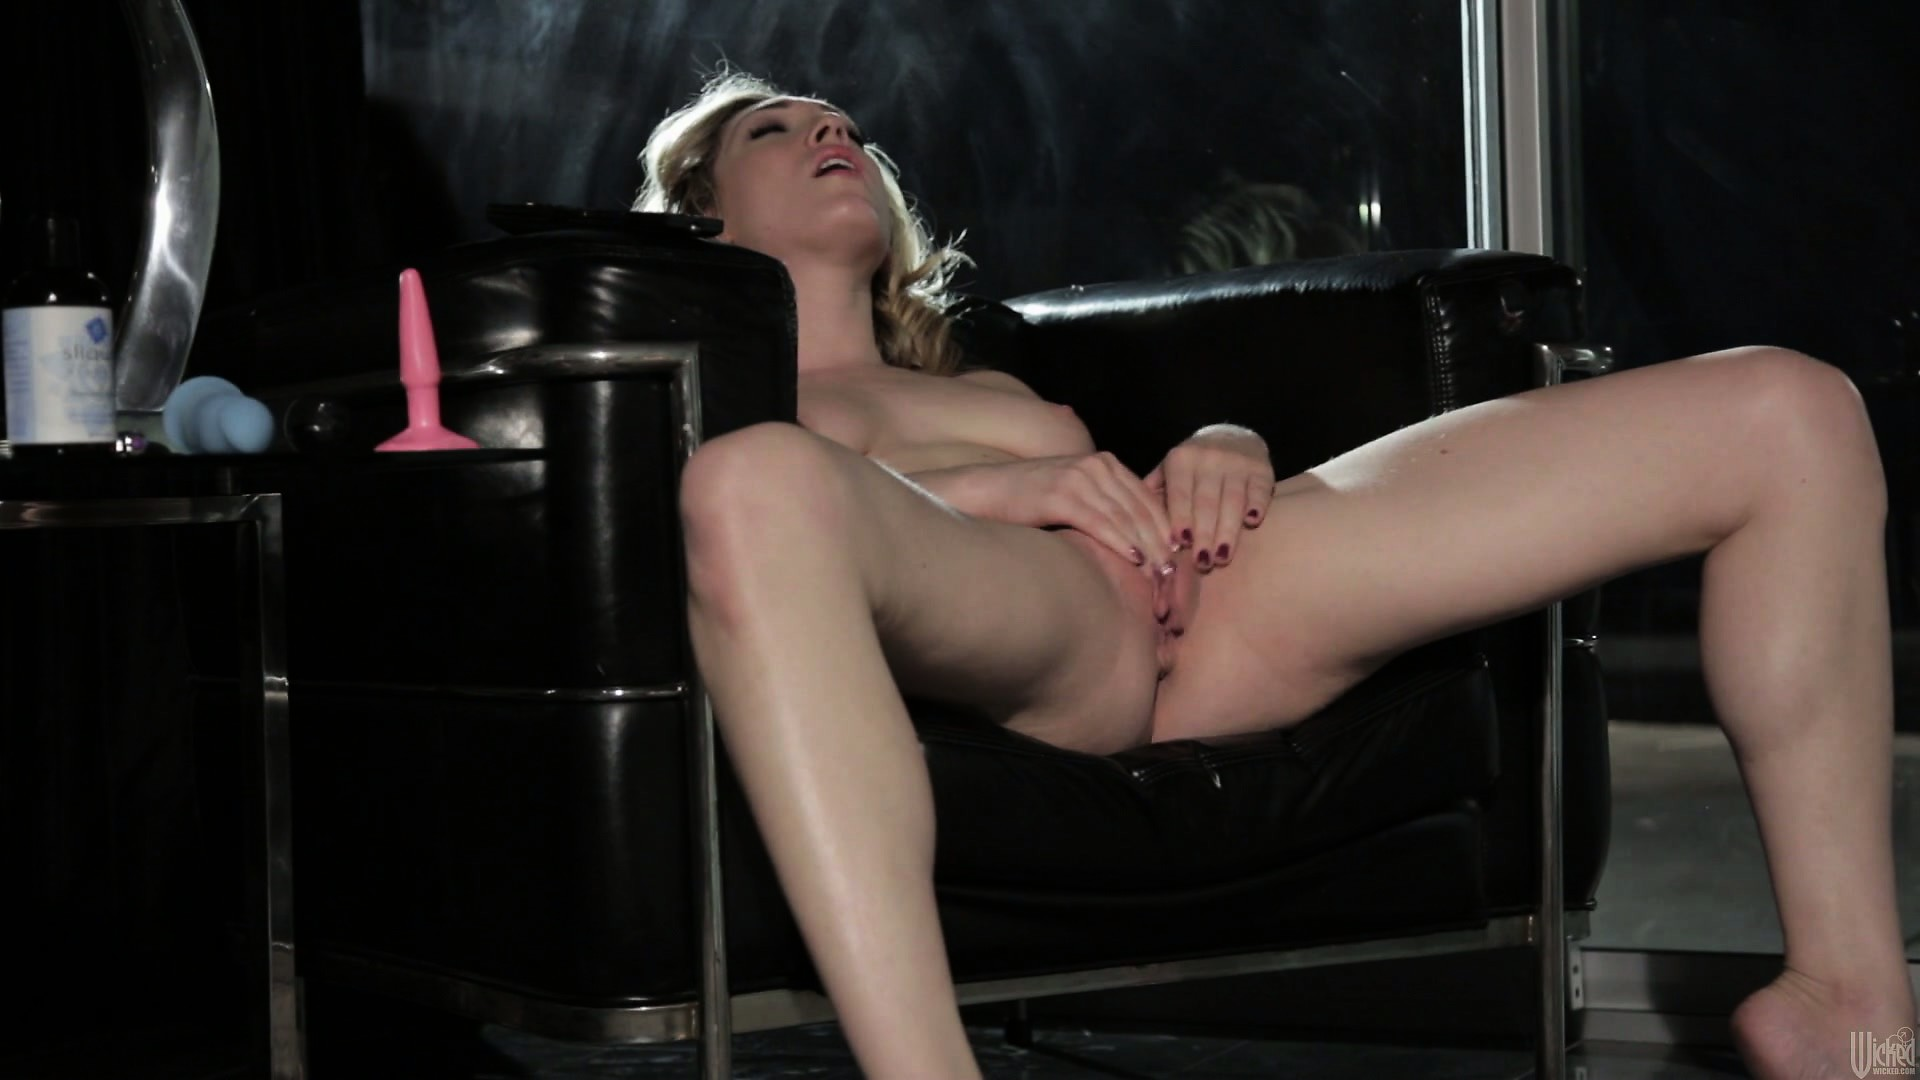 Porn Tube of Jessica Sits In Her Chair And Rubs, Then Toys Her Cunt, Licking Off Her Juices